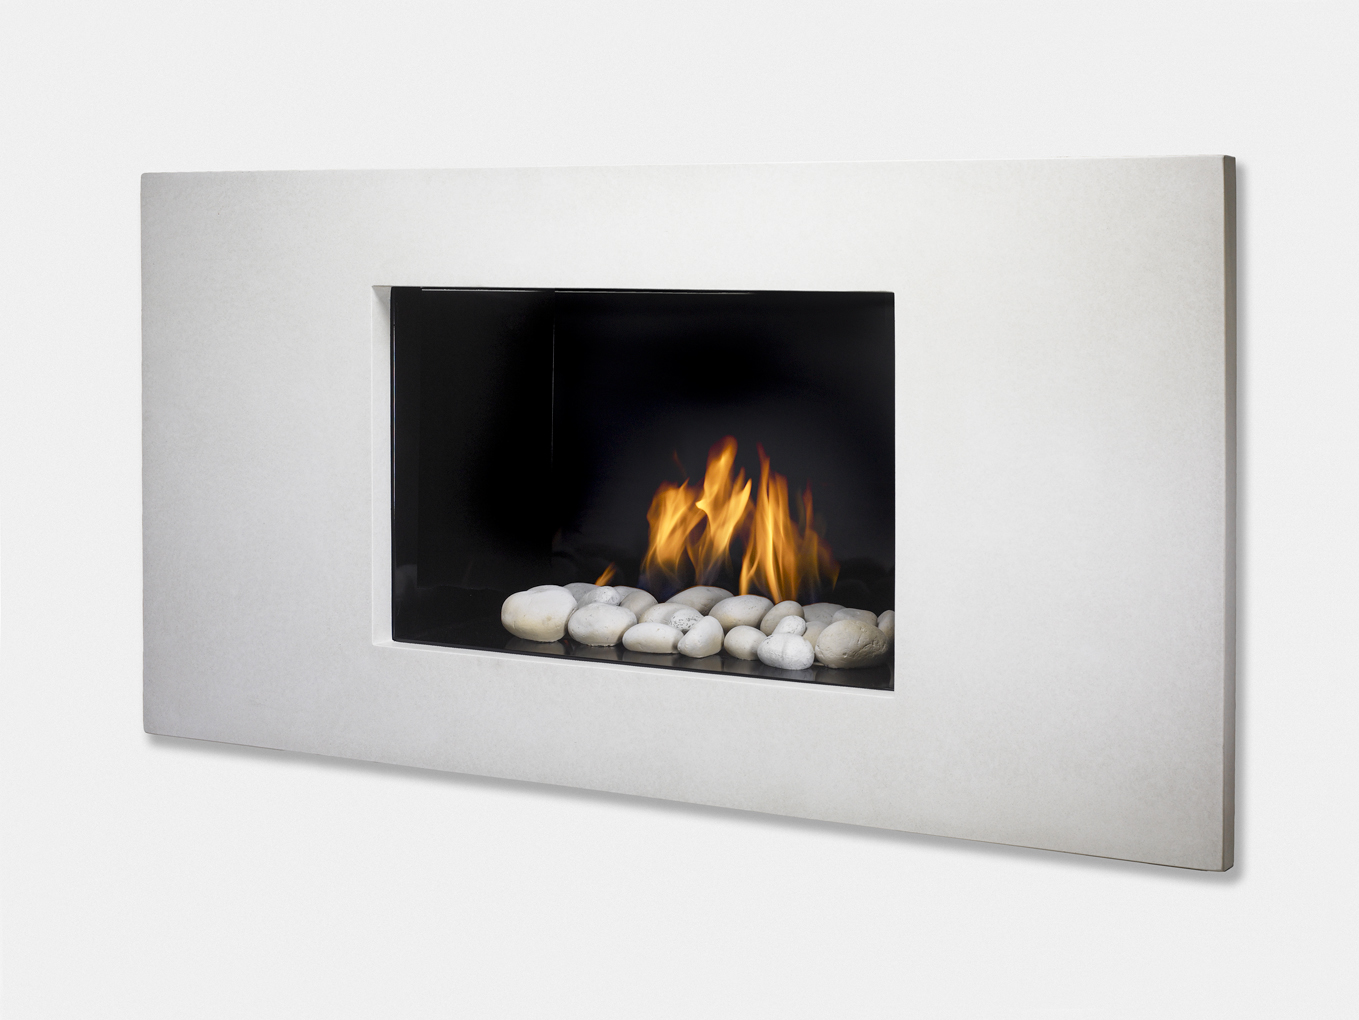 The Modern Vision Gas Fireplace Shown With Black Enamel Interior And White  Surround.The Simplicity Of Clean Lines Combined With Black And White Gives  ...